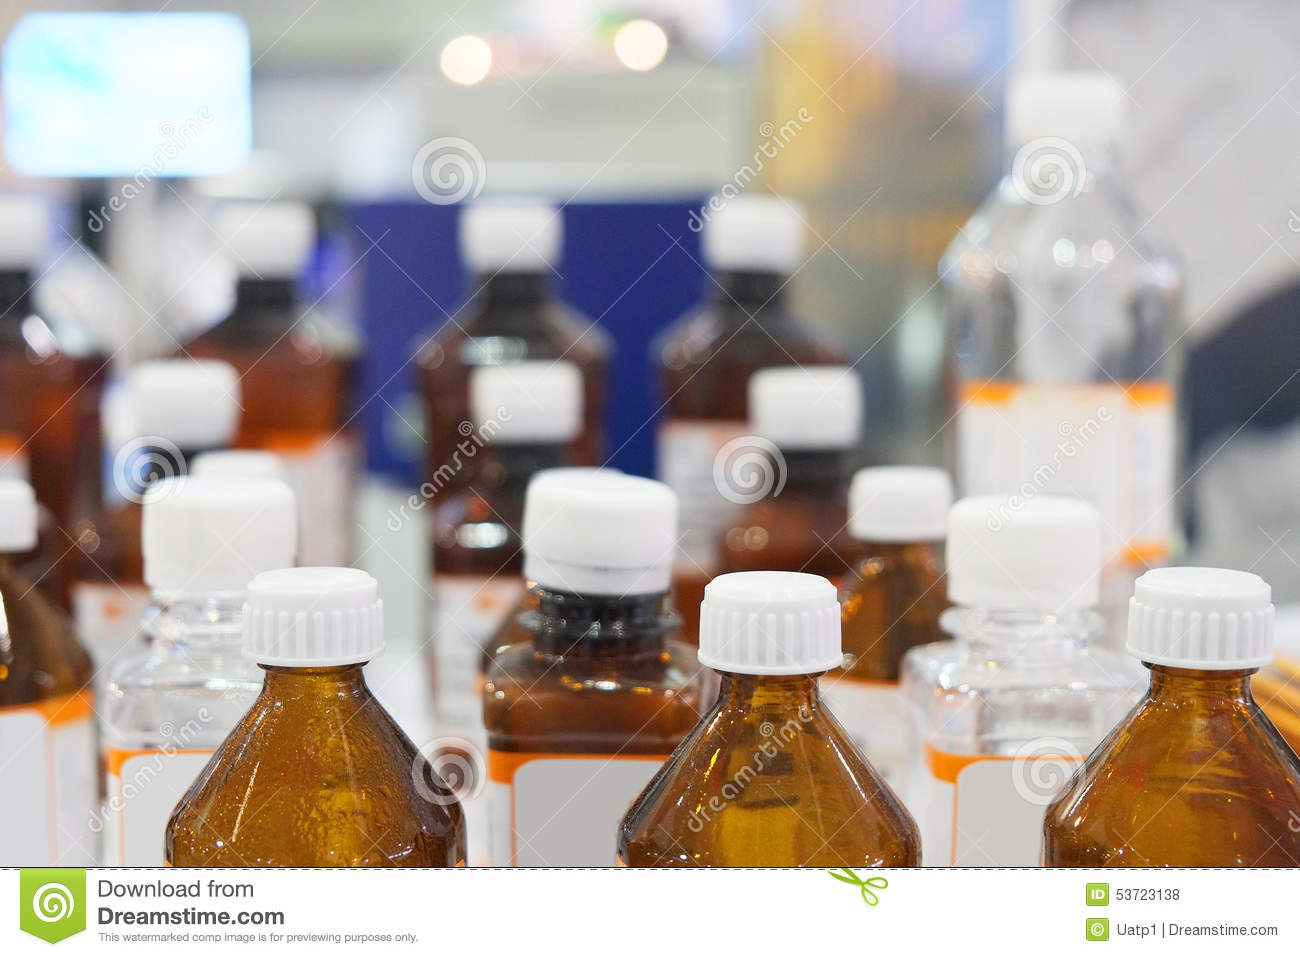 Bottles of chemicals in the laboratory